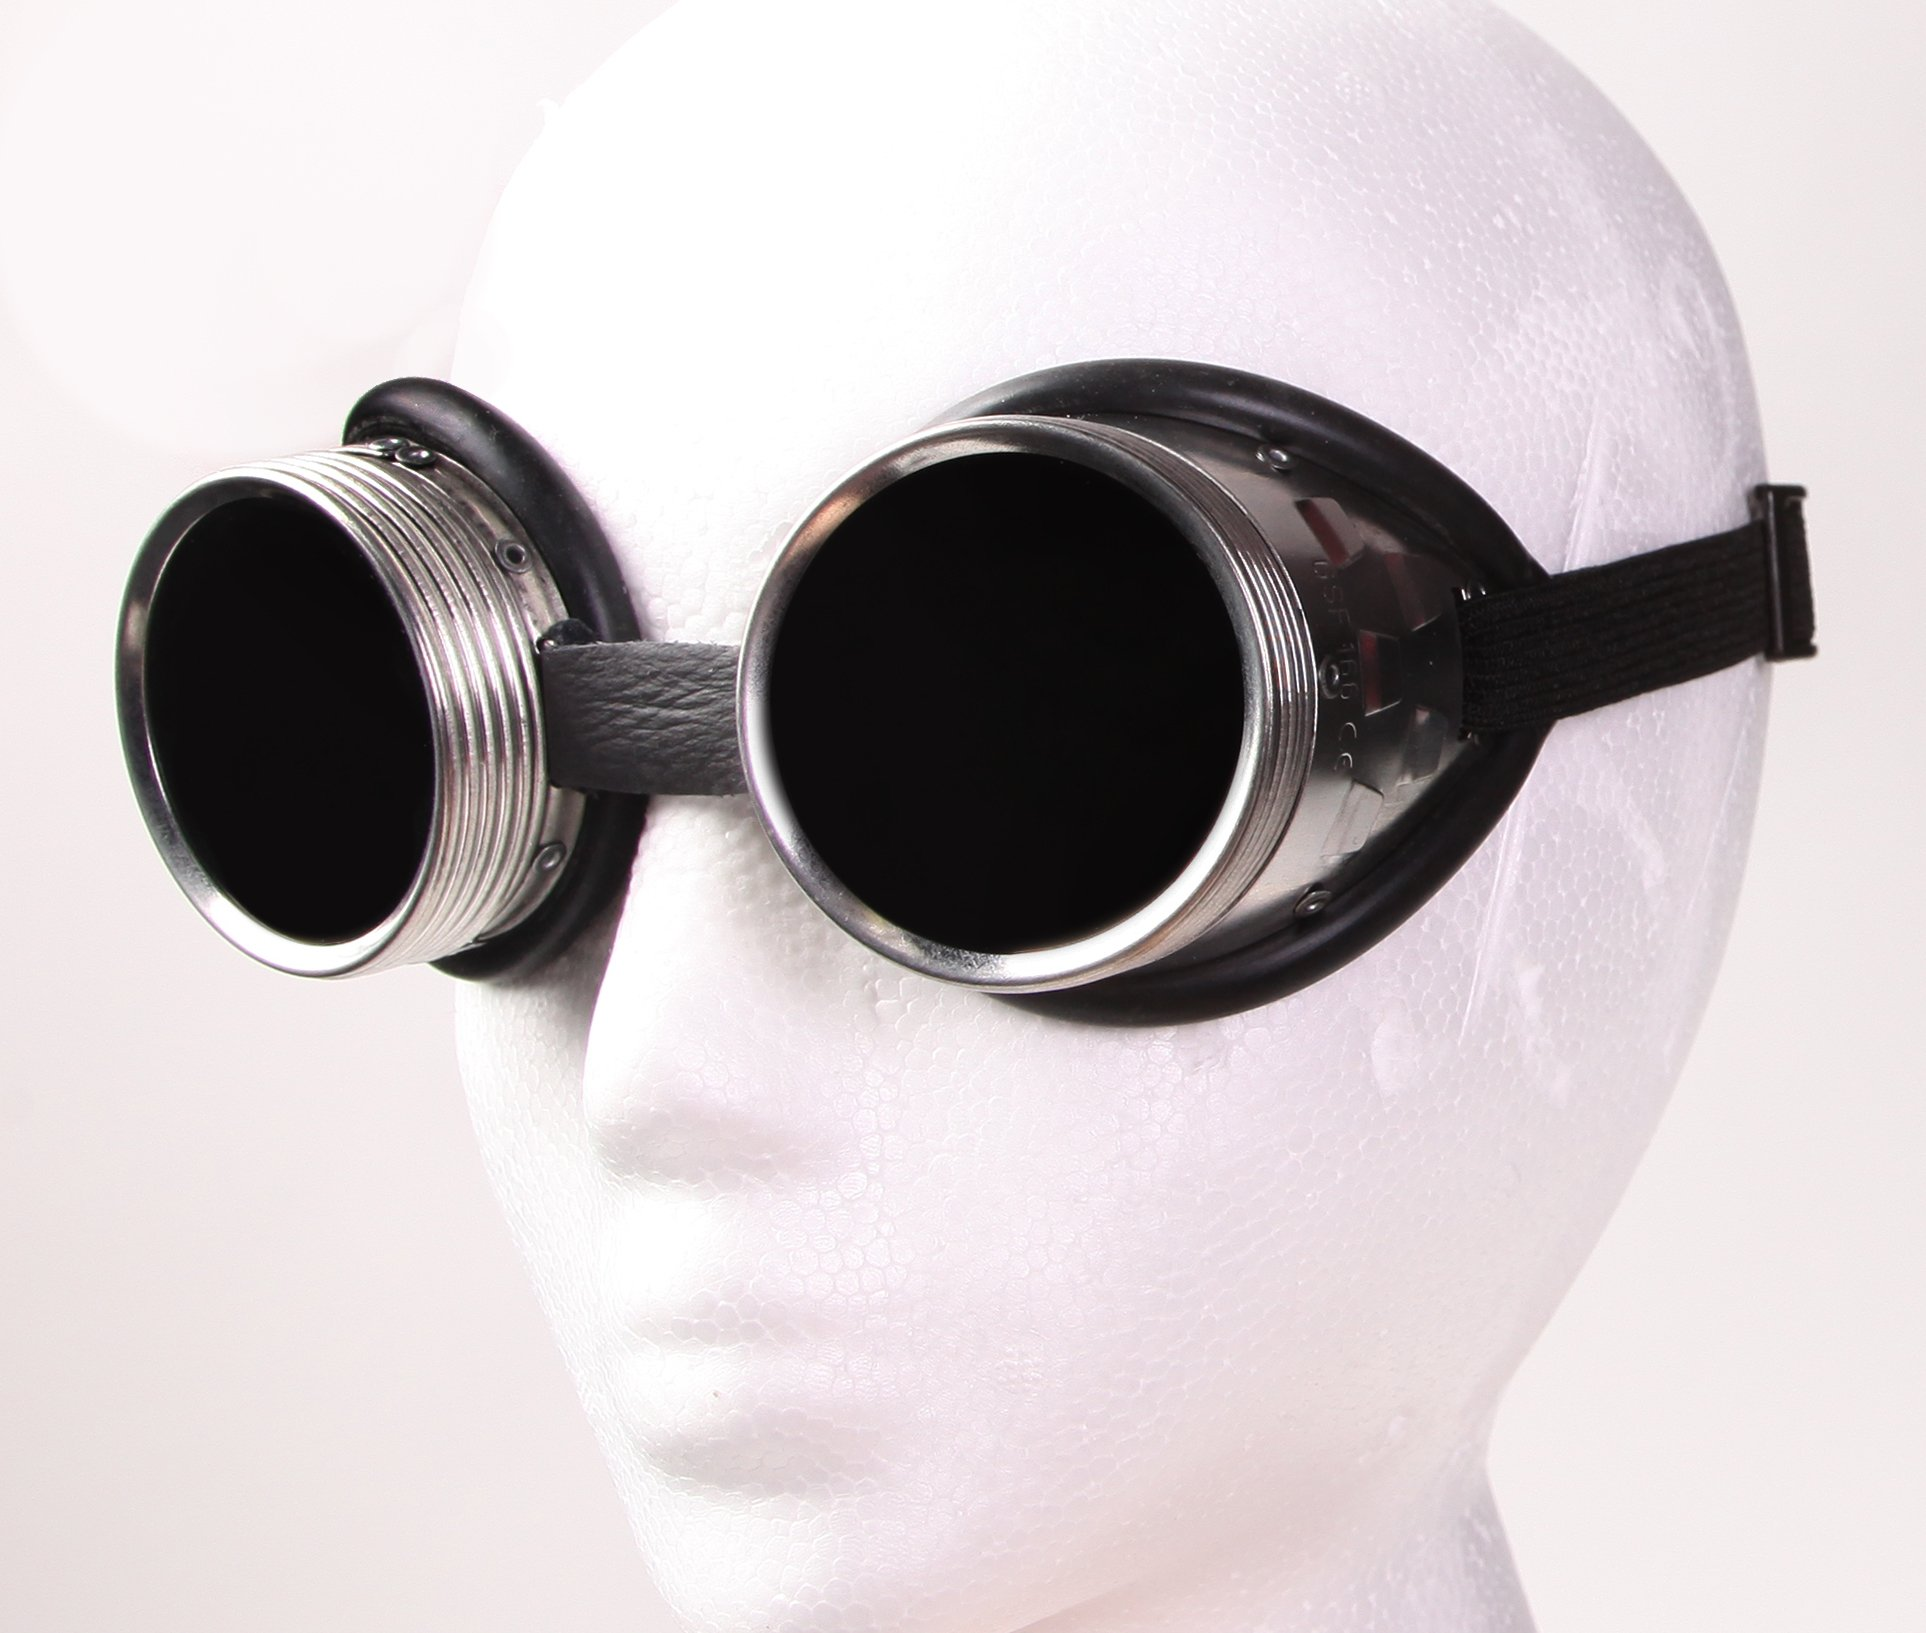 Steampunk Metal Welding Goggles - Dark Tinted Glass Lens with Aluminum Metal and Rubber Lining